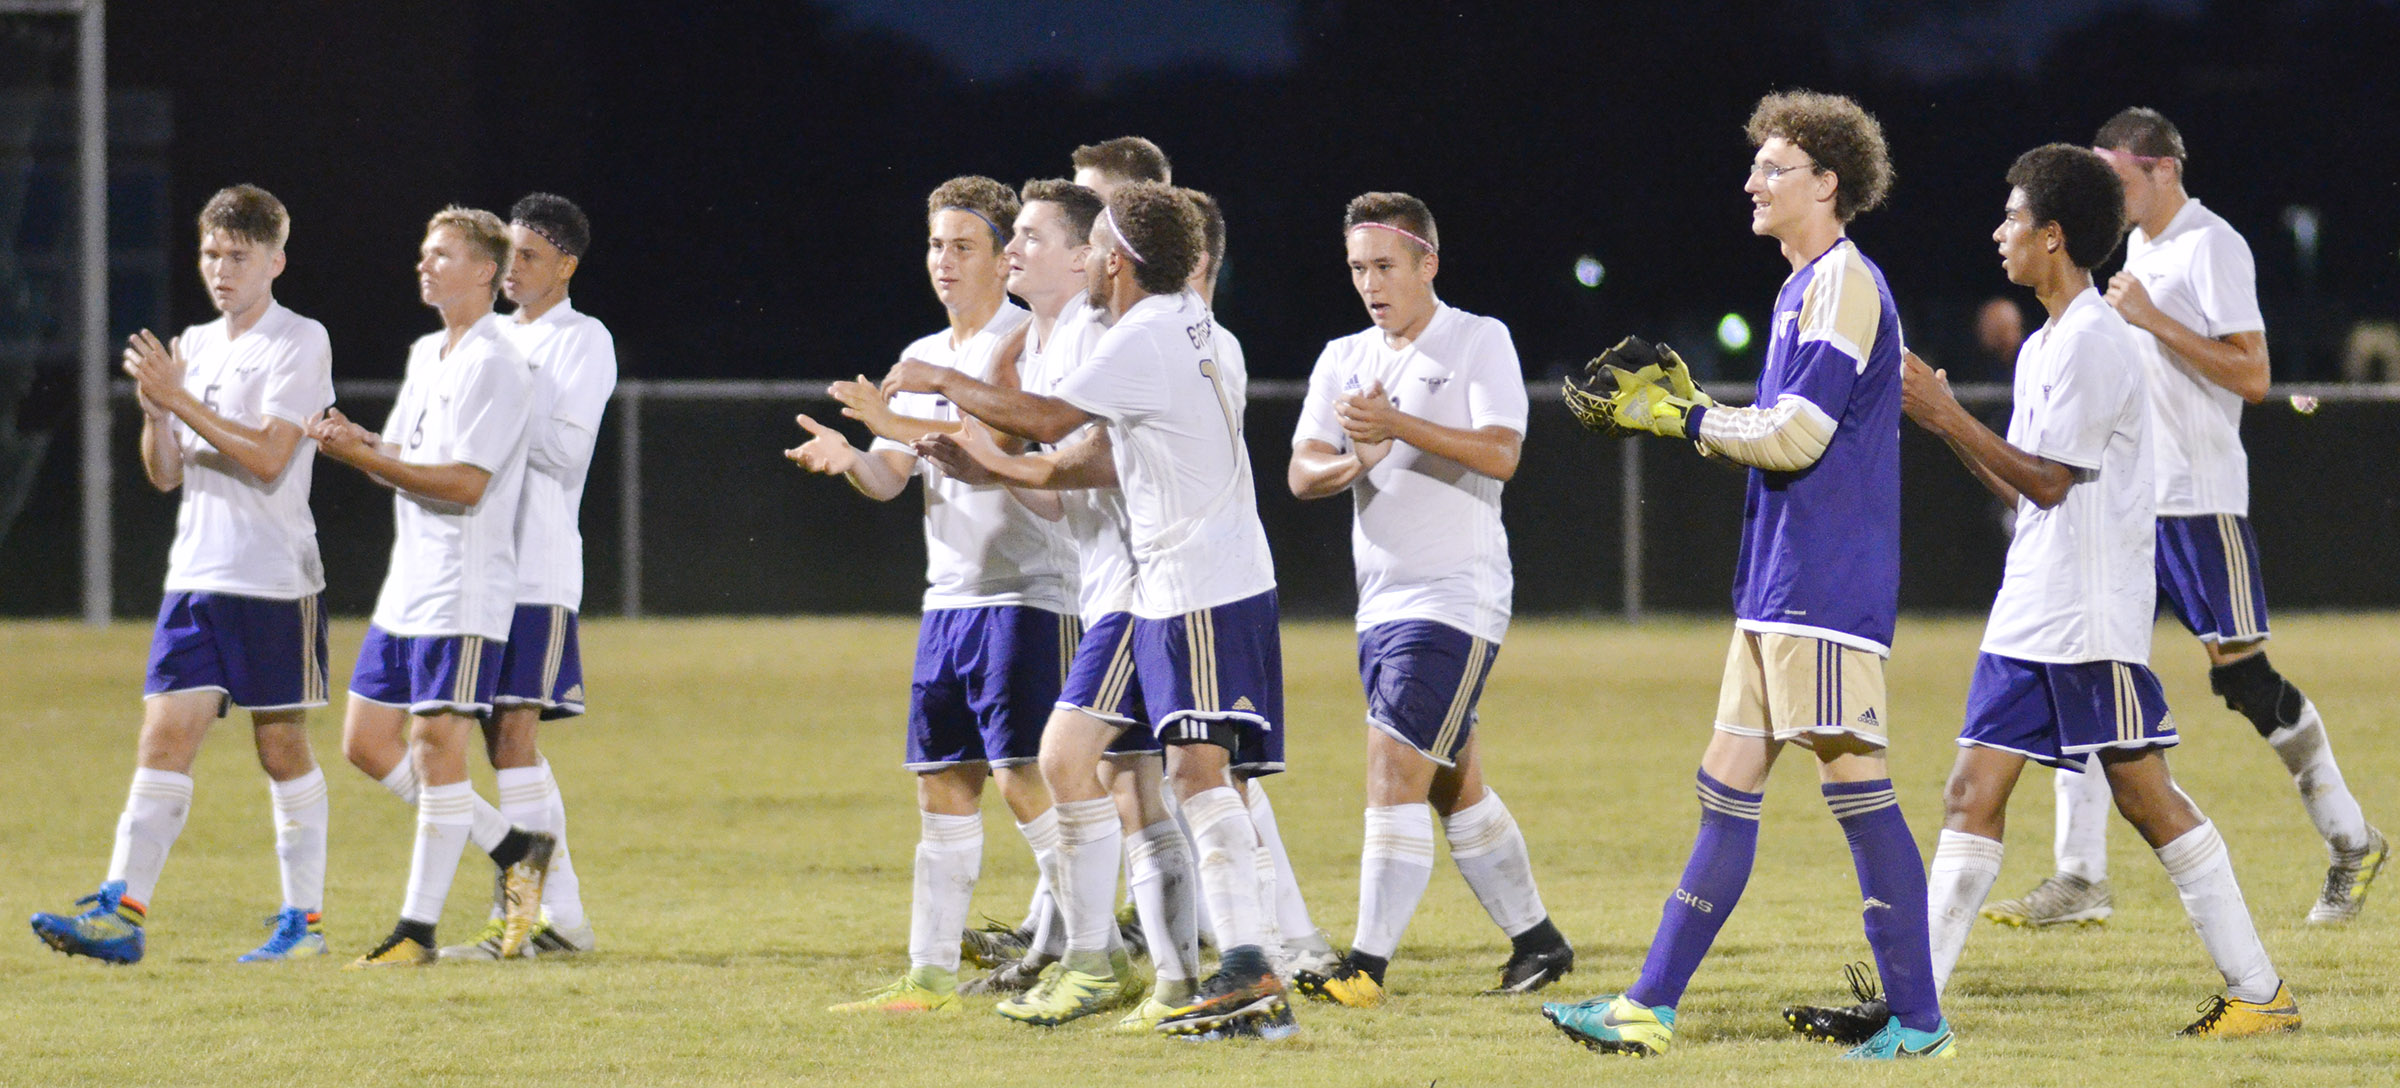 CHS soccer players celebrate their win.